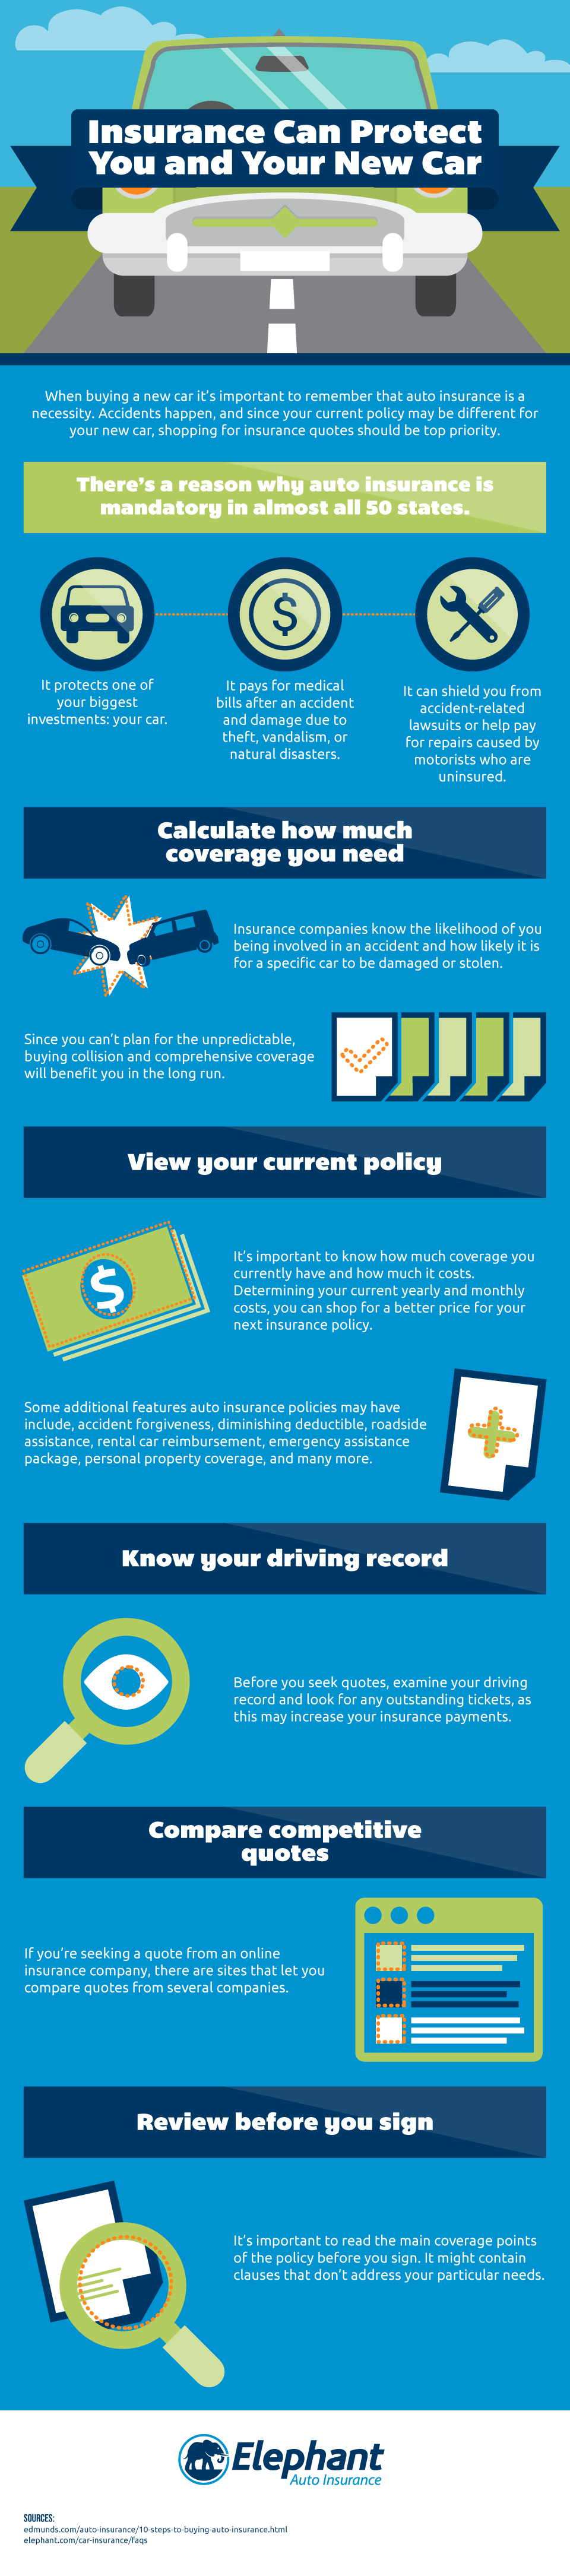 Elephant Auto Insurance Quote Insurance Can Protect You And Your New Car Infographic